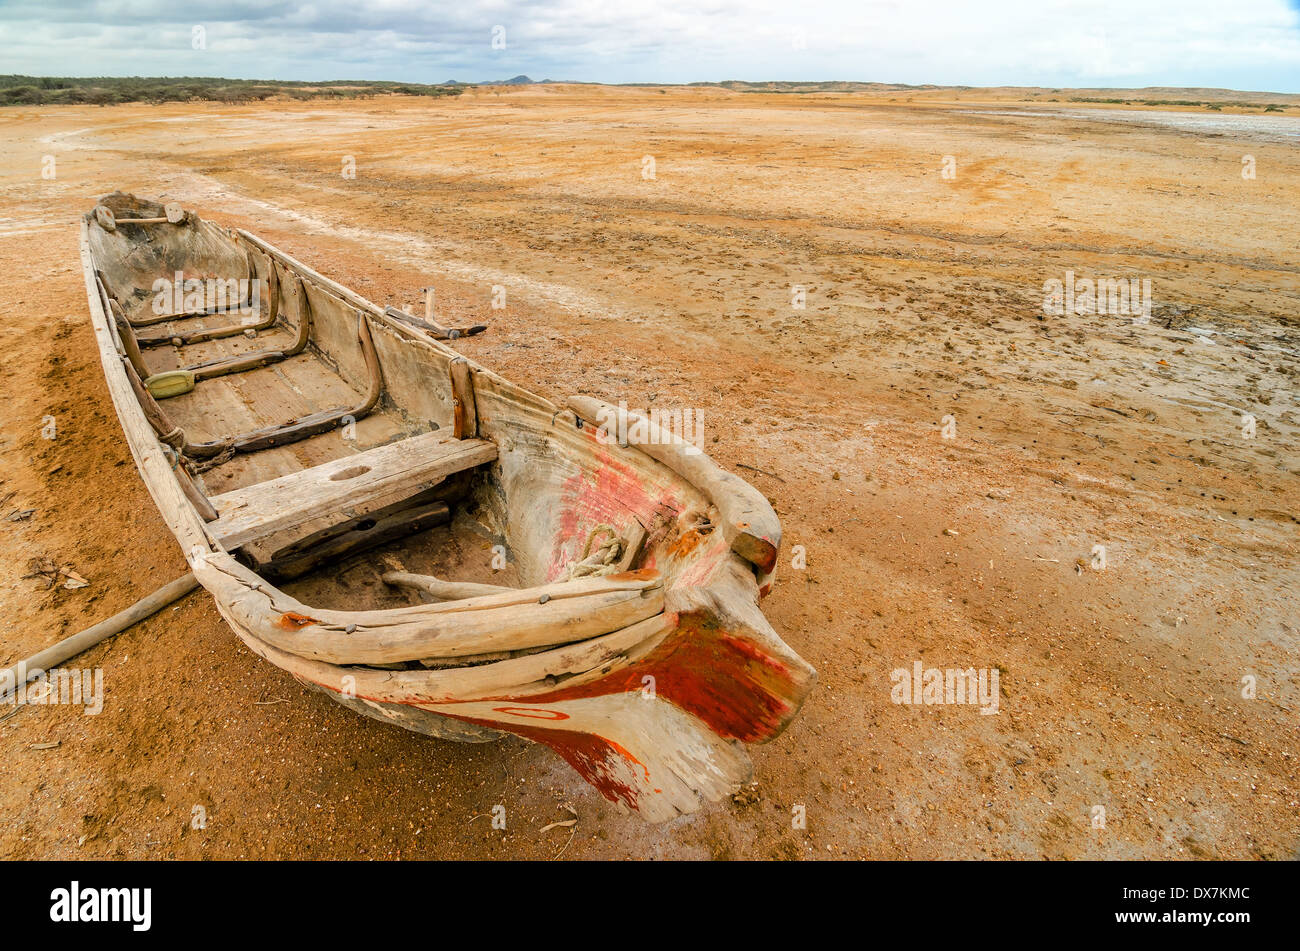 A canoe in the desert region of La Guajira in Colombia Stock Photo